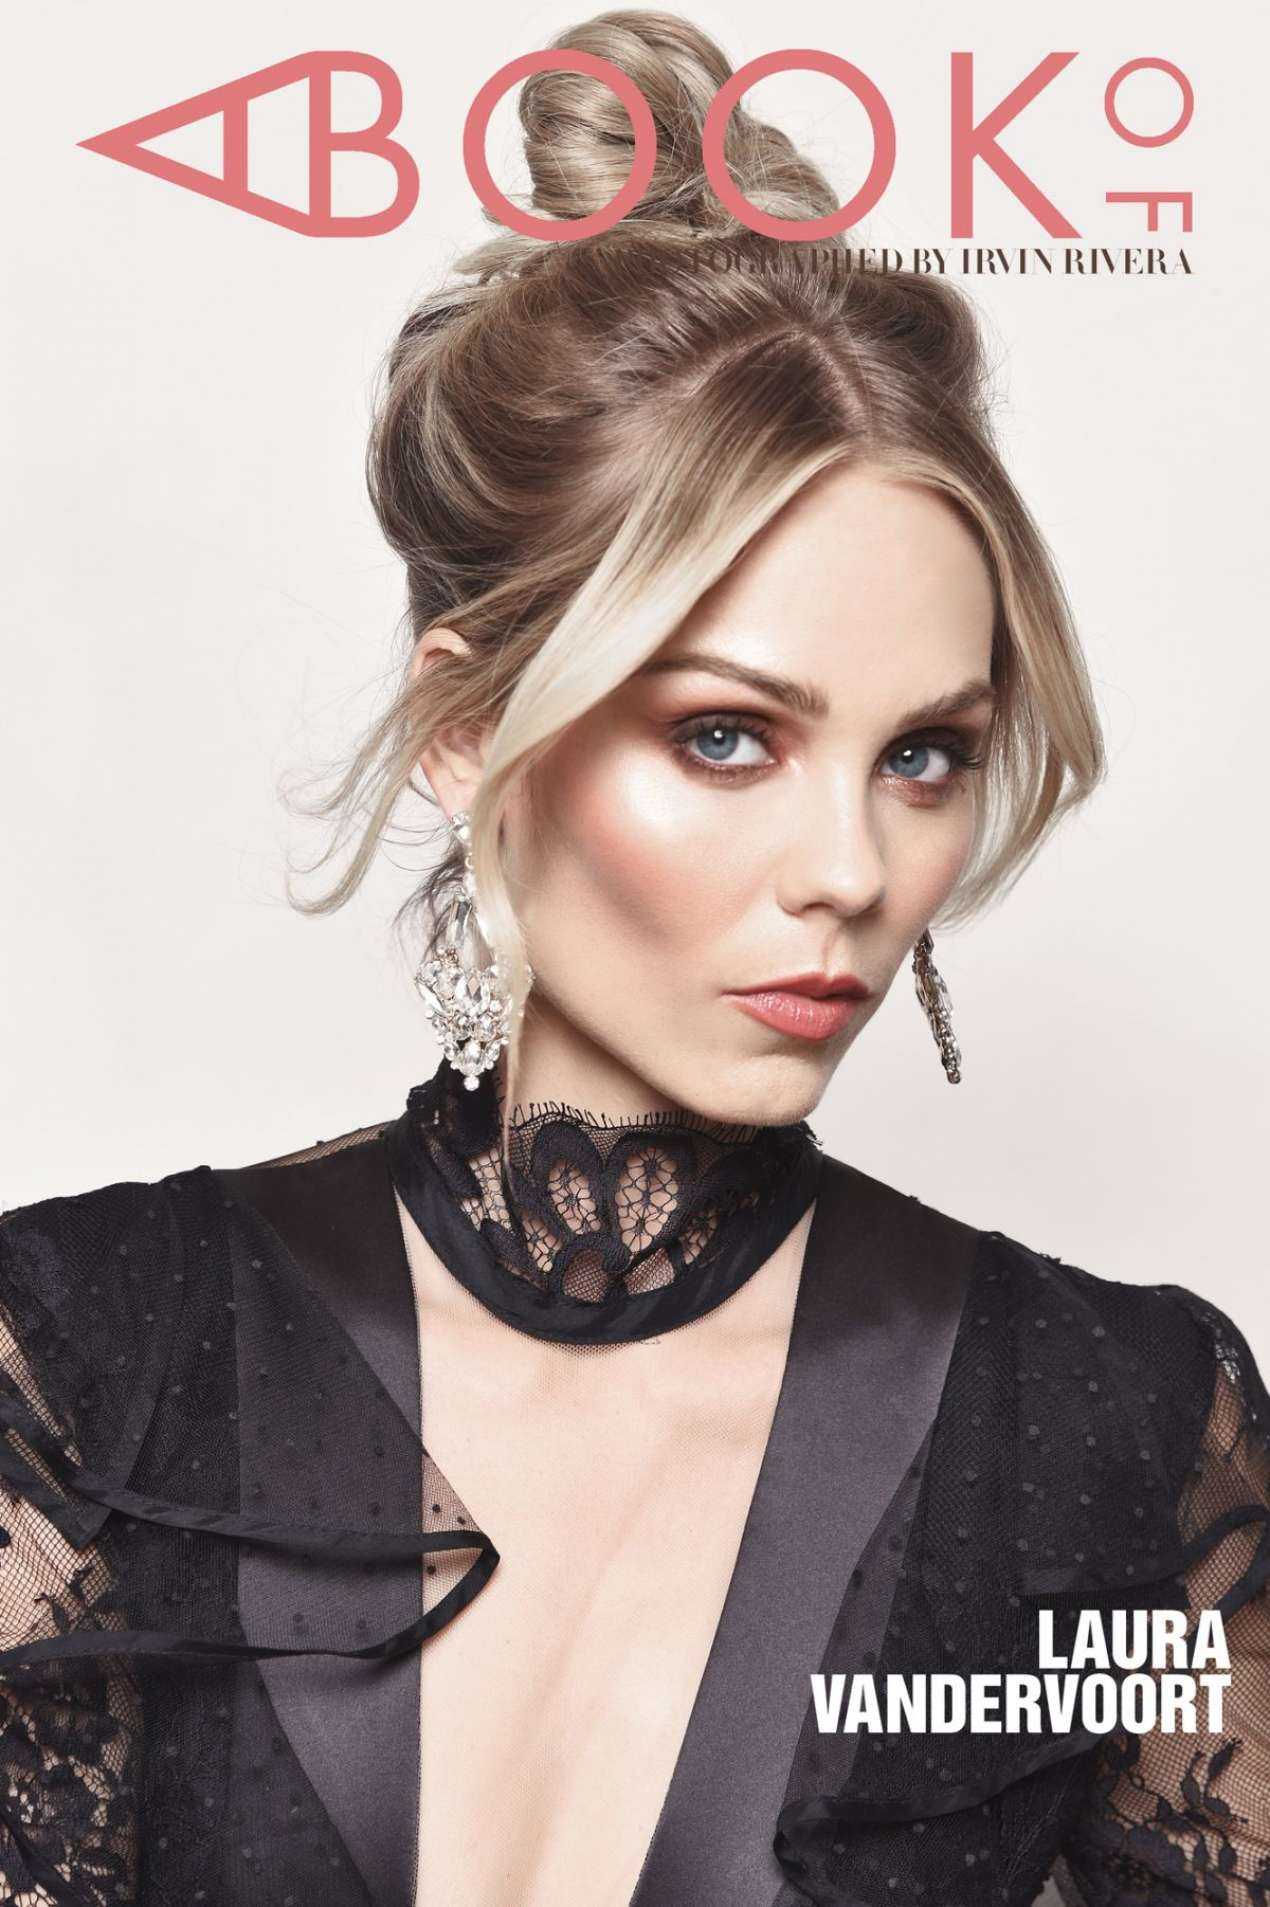 Laura Vandervoort - A Book Of Magazine (October 2017)